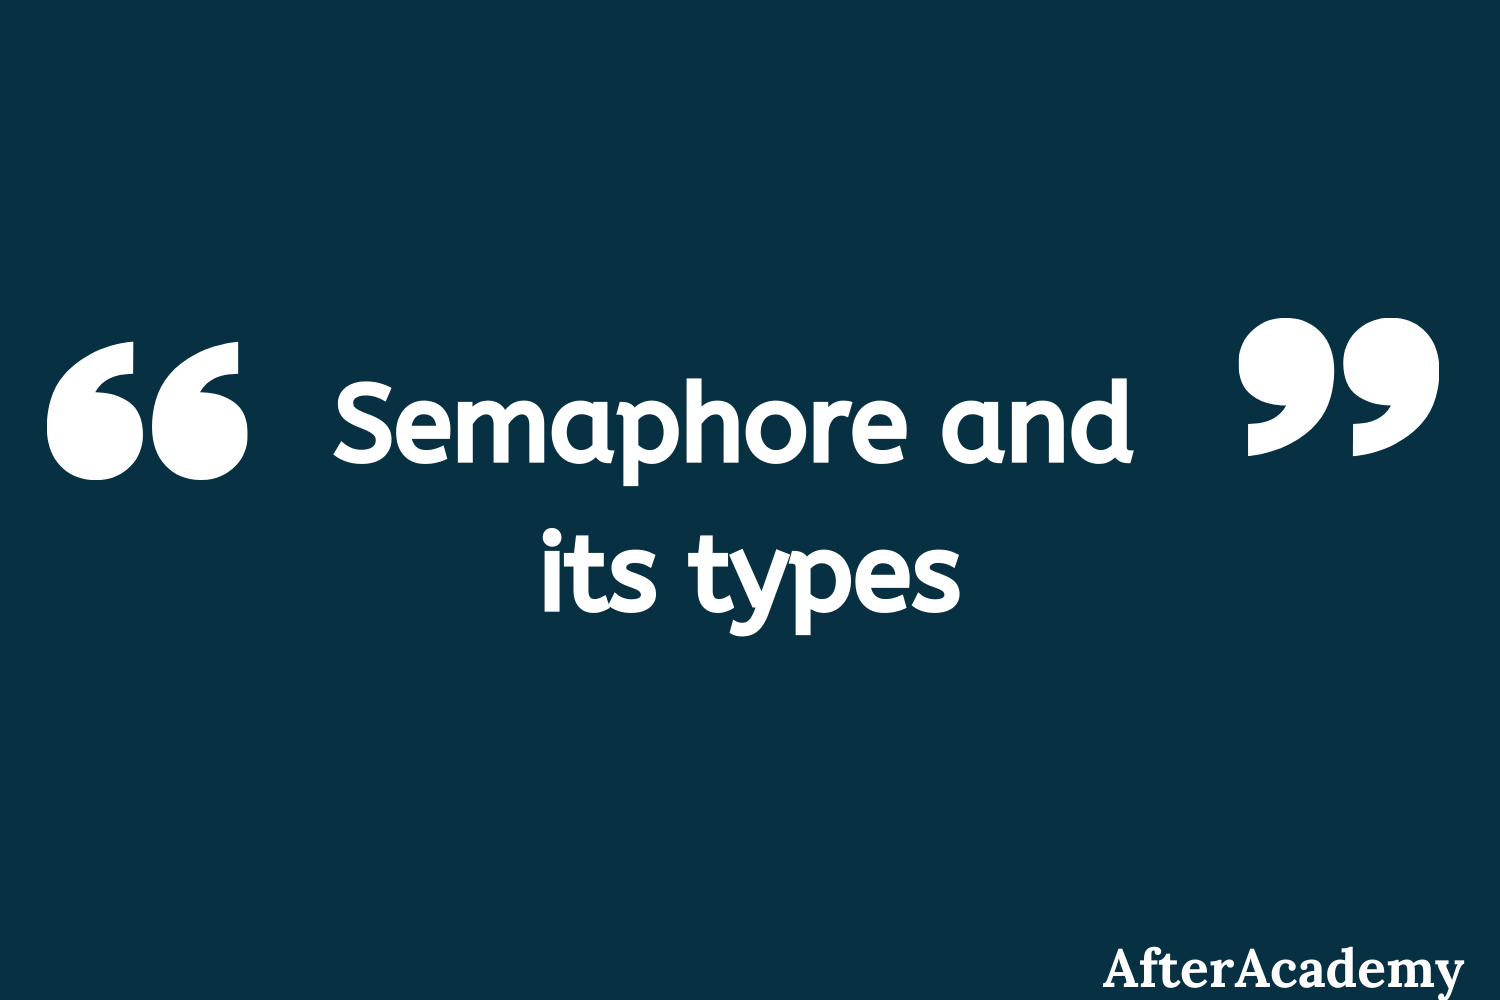 What is semaphore and what are its types?